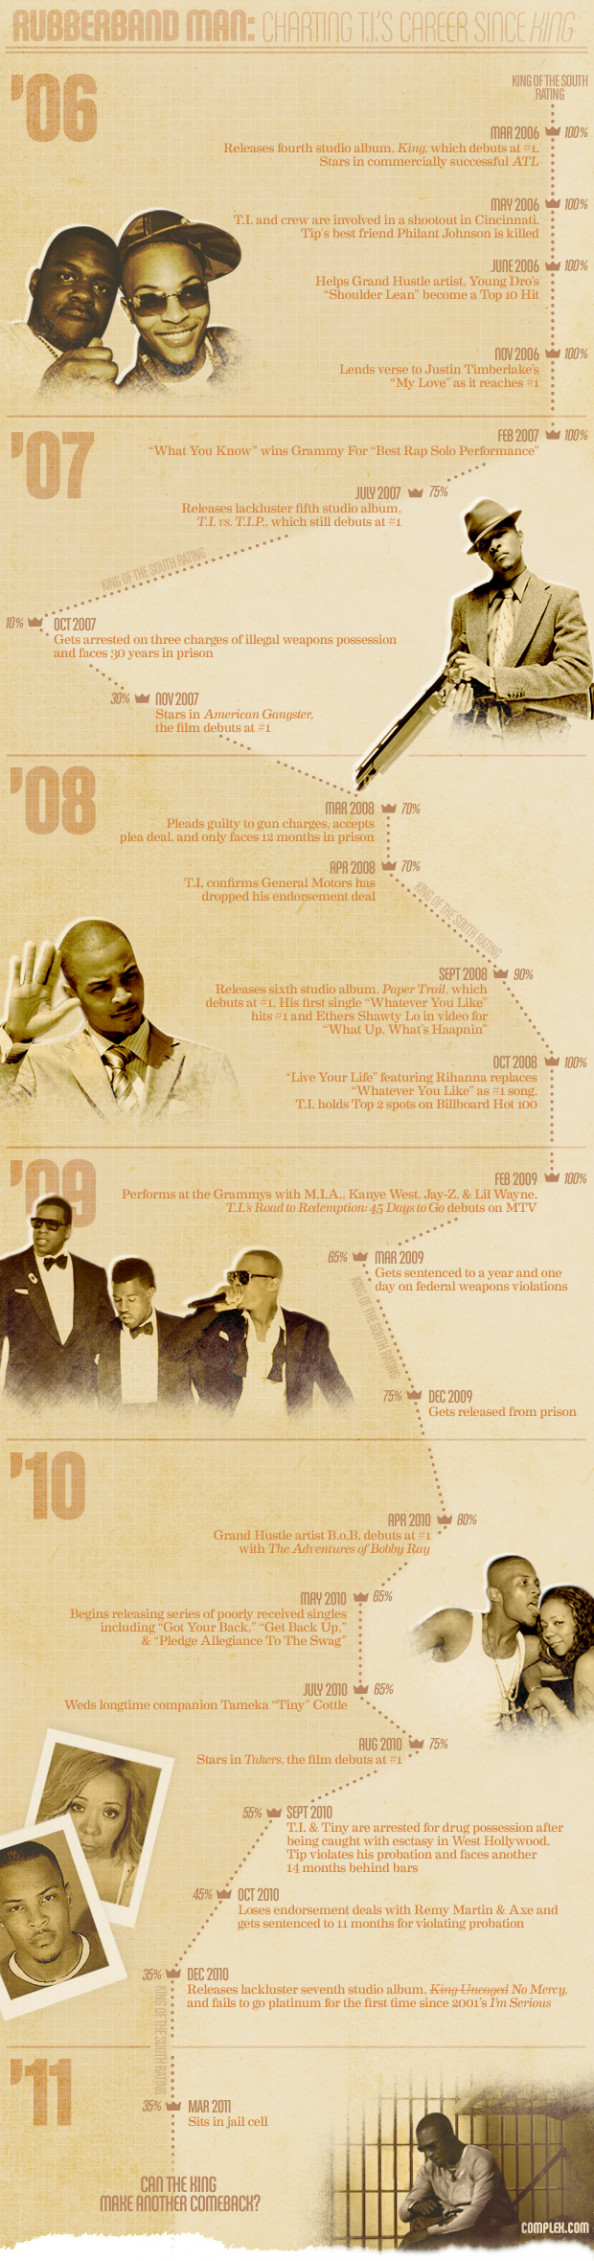 Rubberband Man: Charting T.I&#039;s Success Infographic